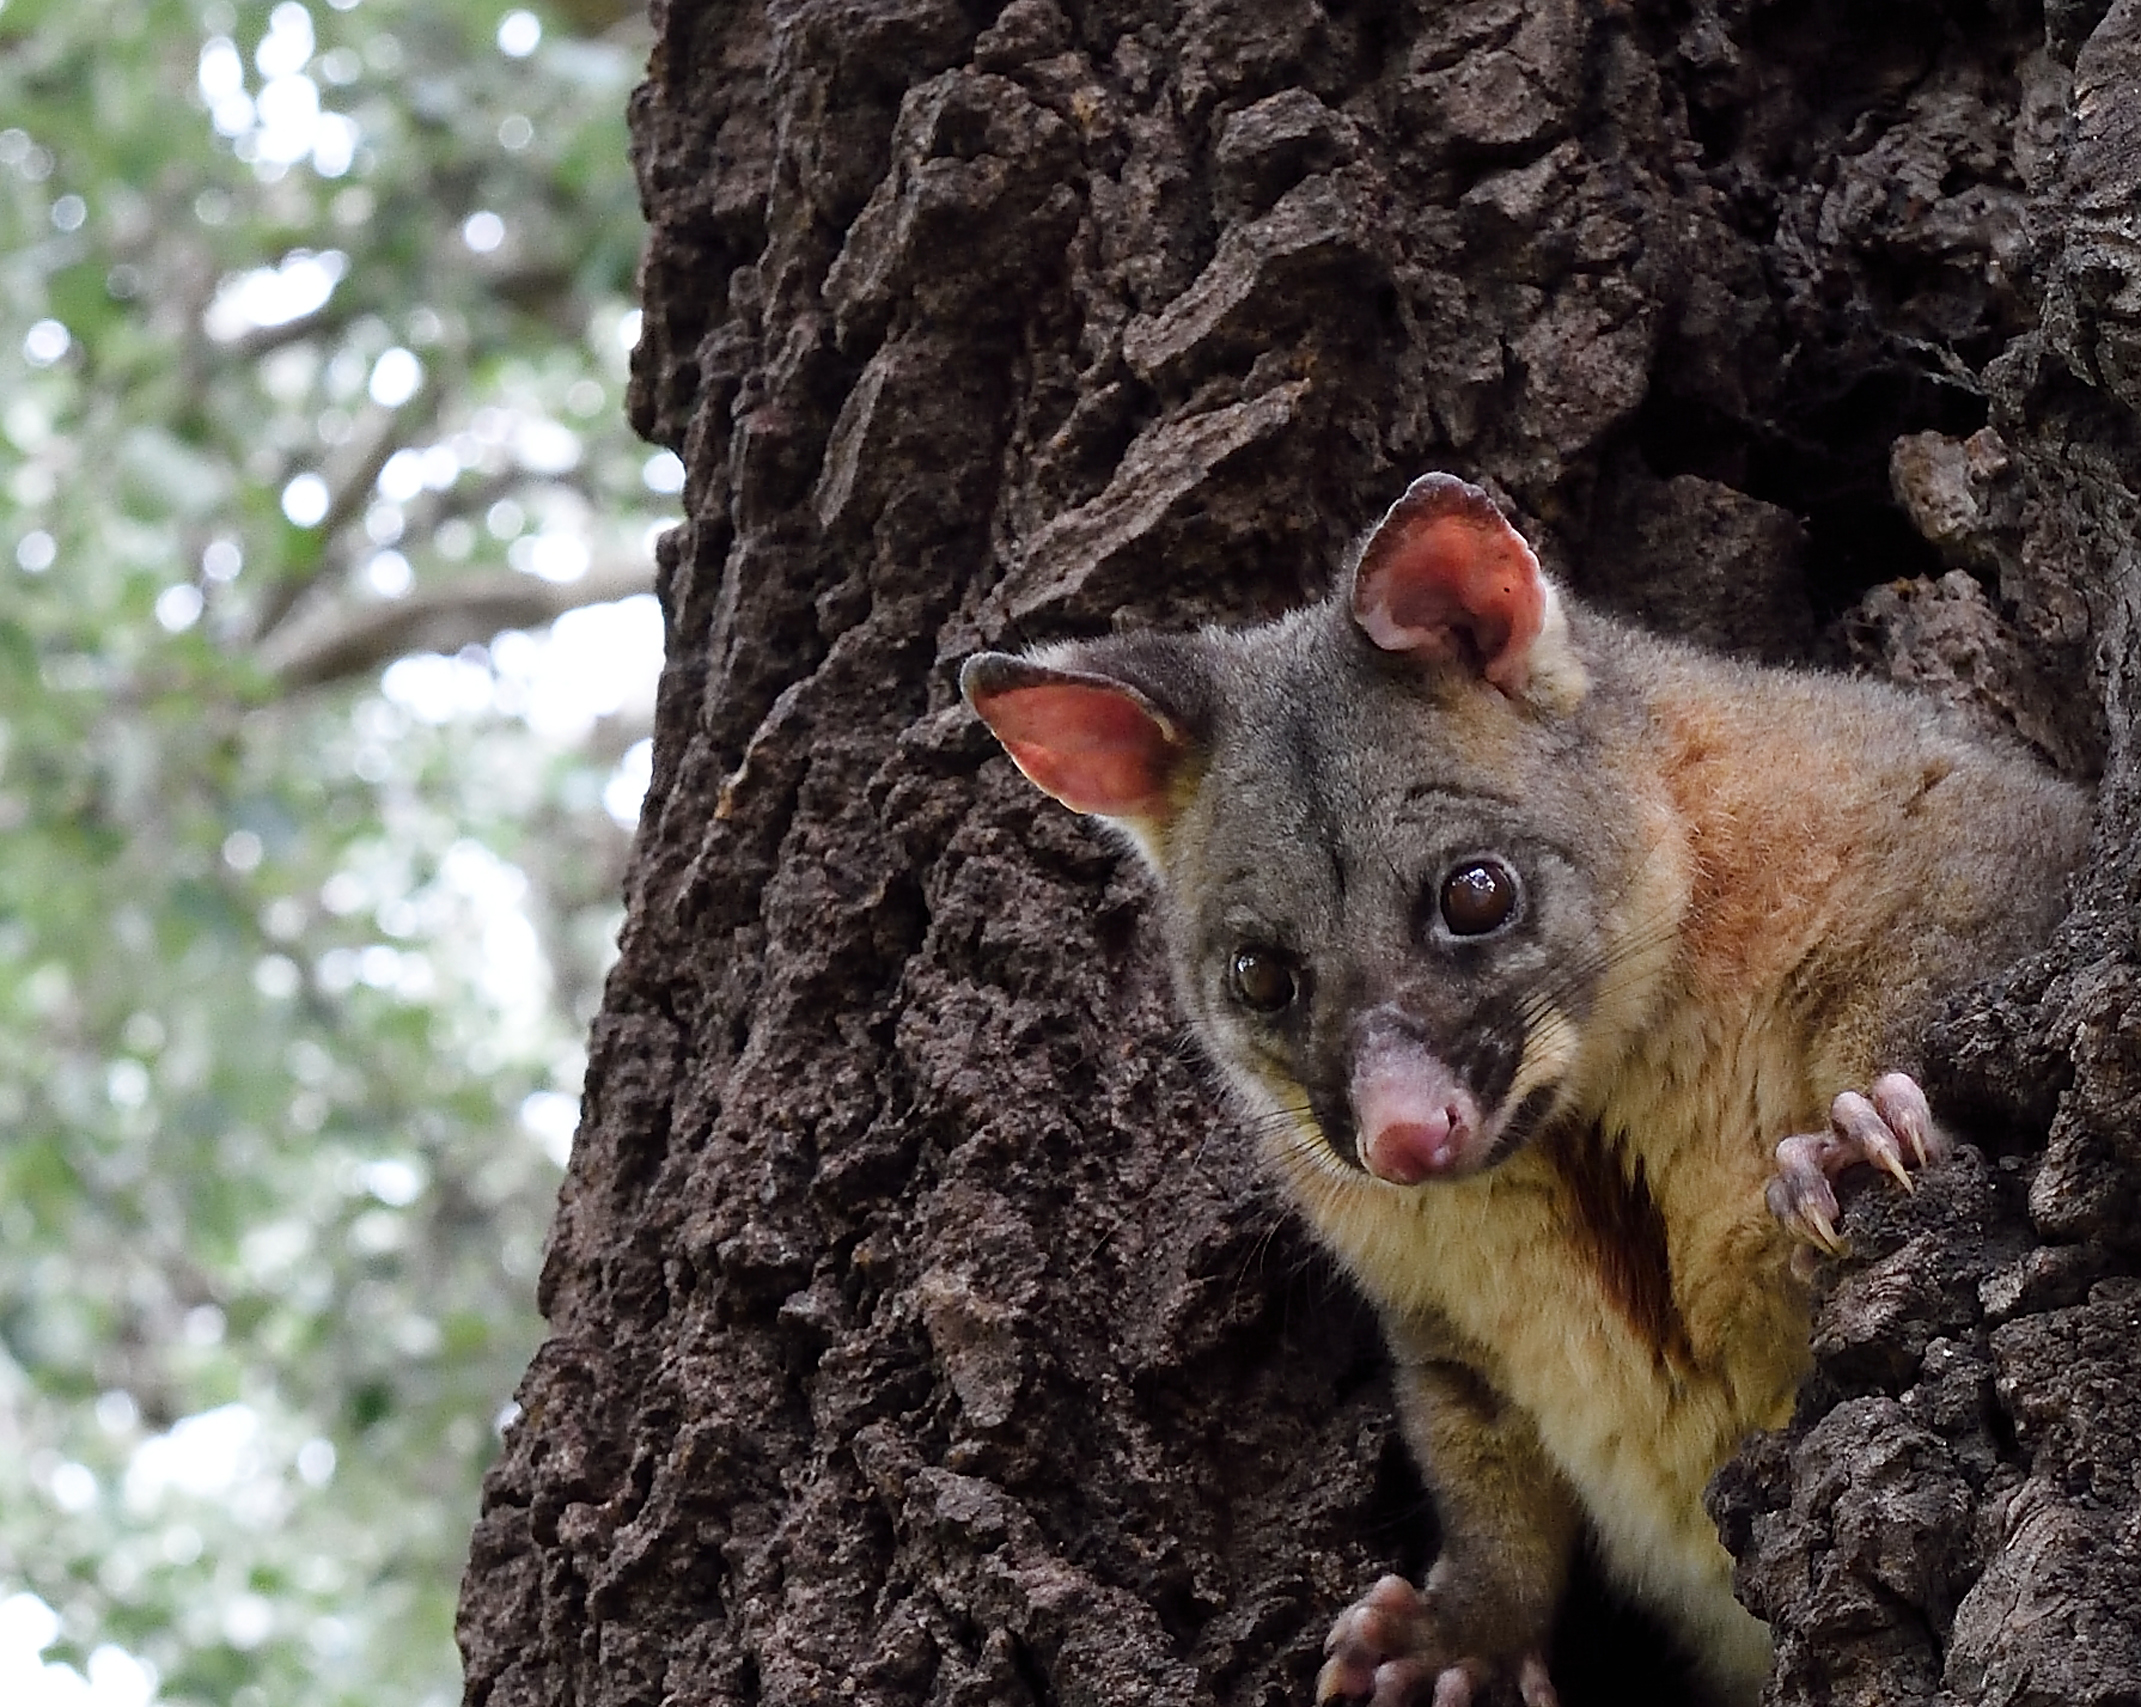 Tree hollows are important habitat for possums. You can put up a possum house to attract more visitors